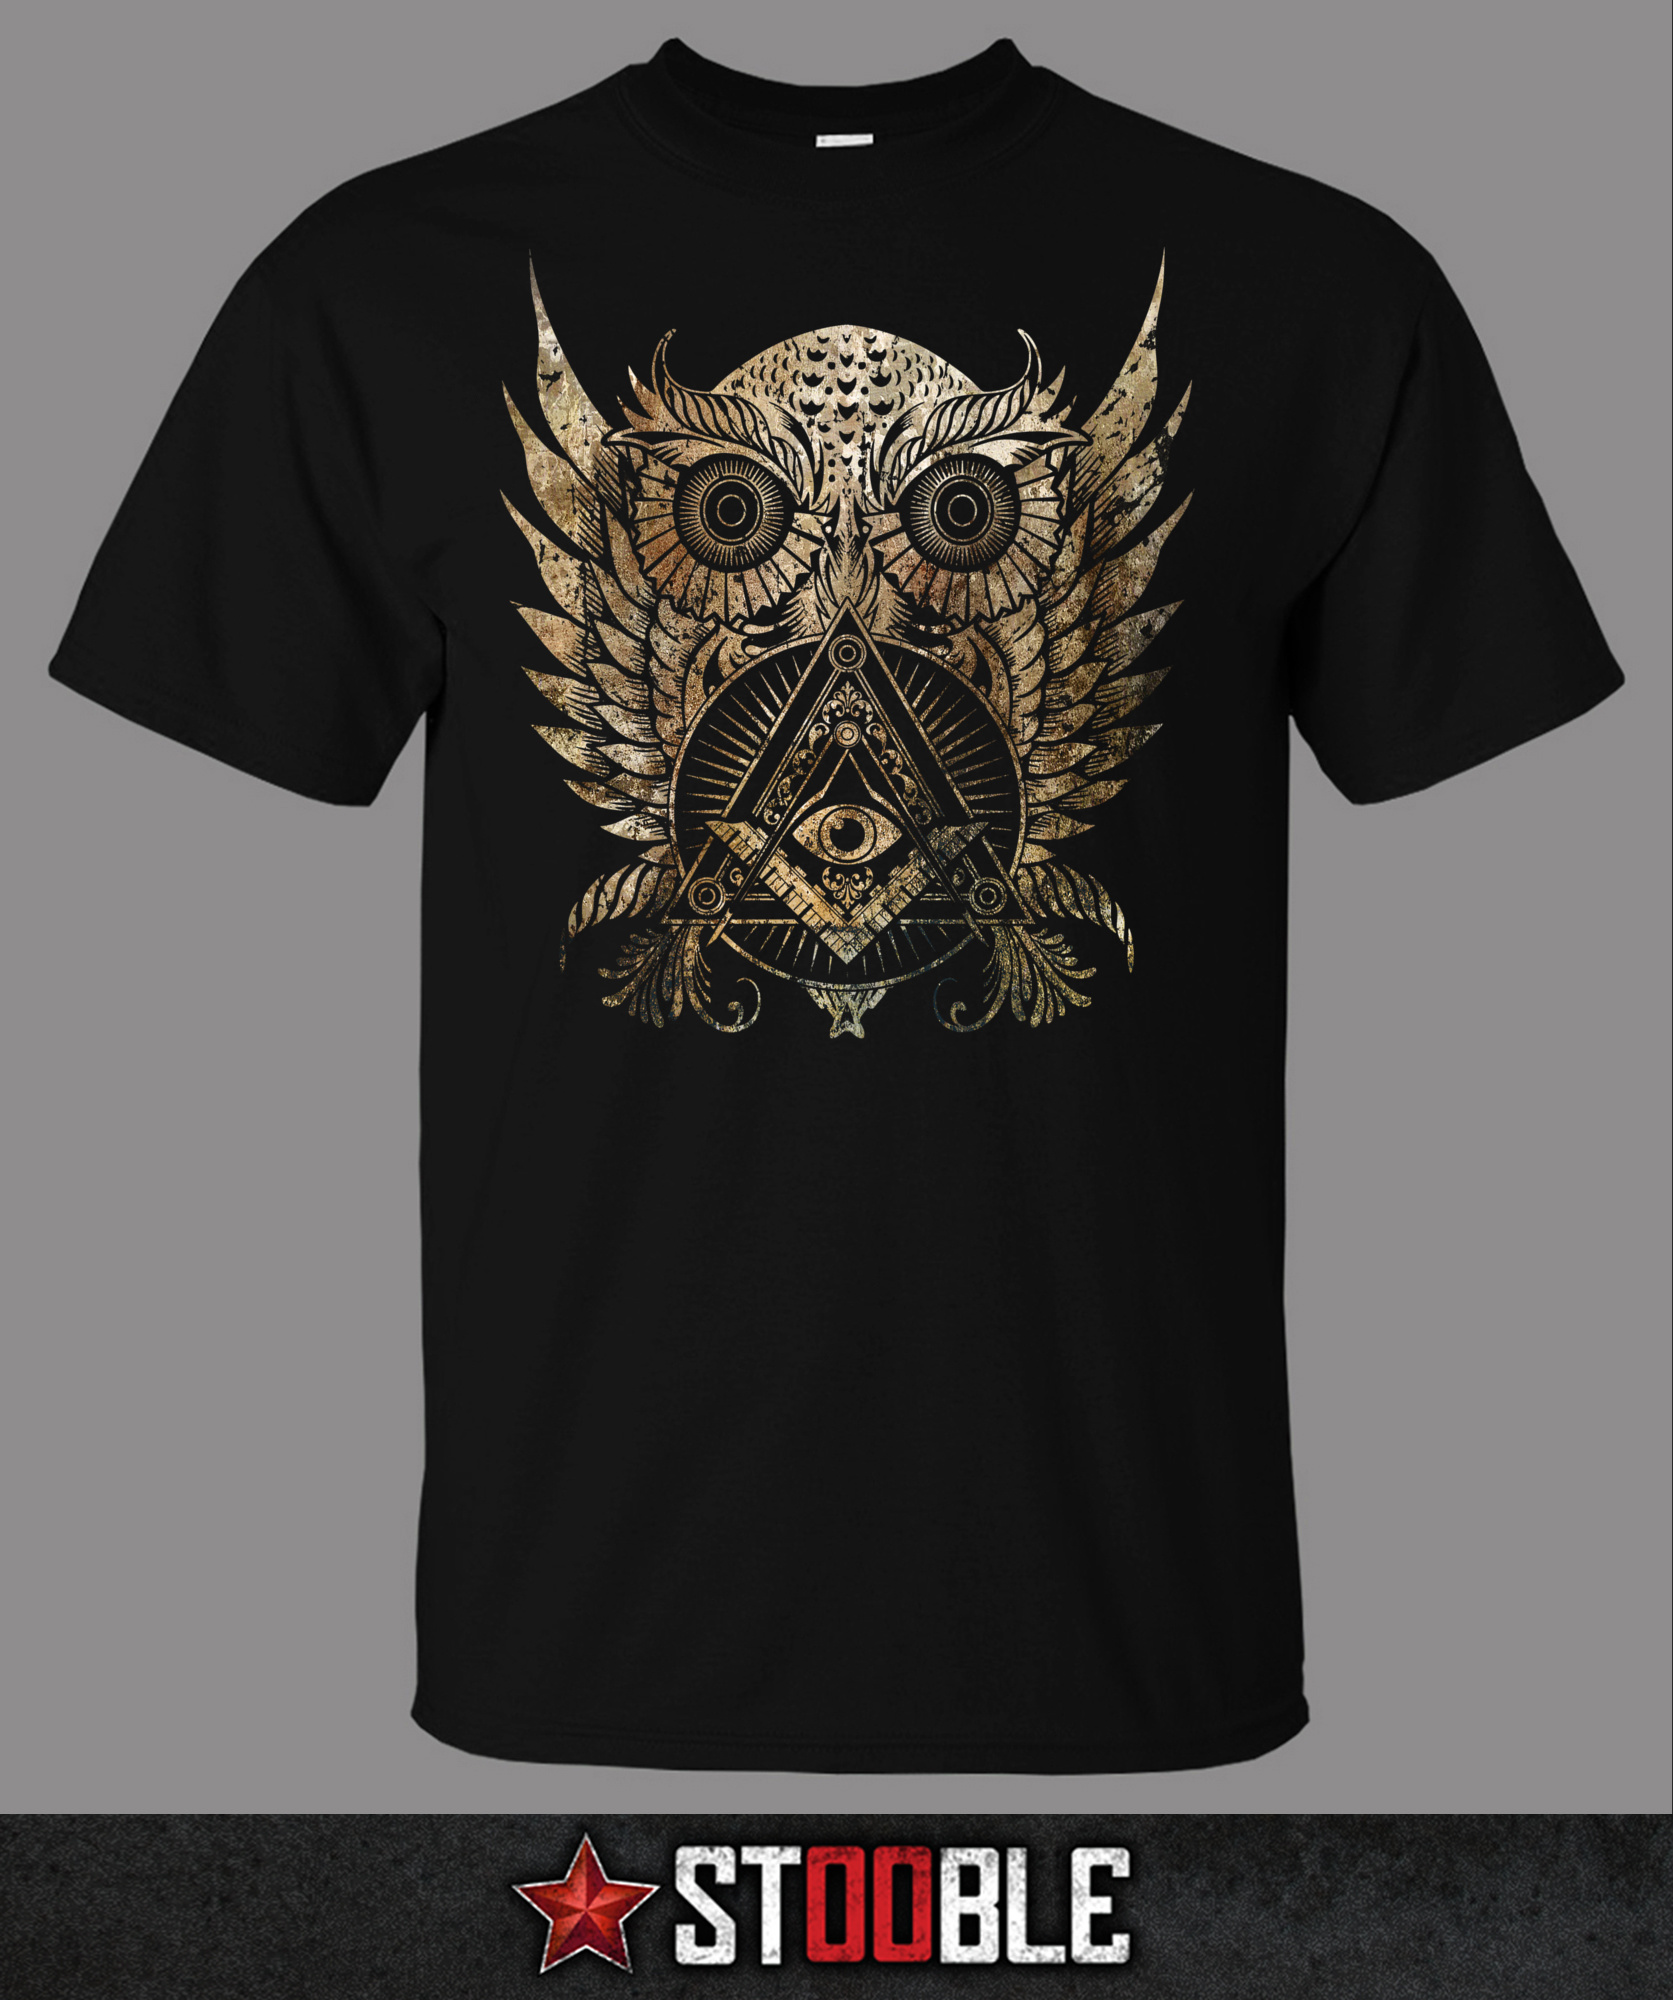 Owl illuminati t shirt new direct from manufacturer ebay T shirt with owl design